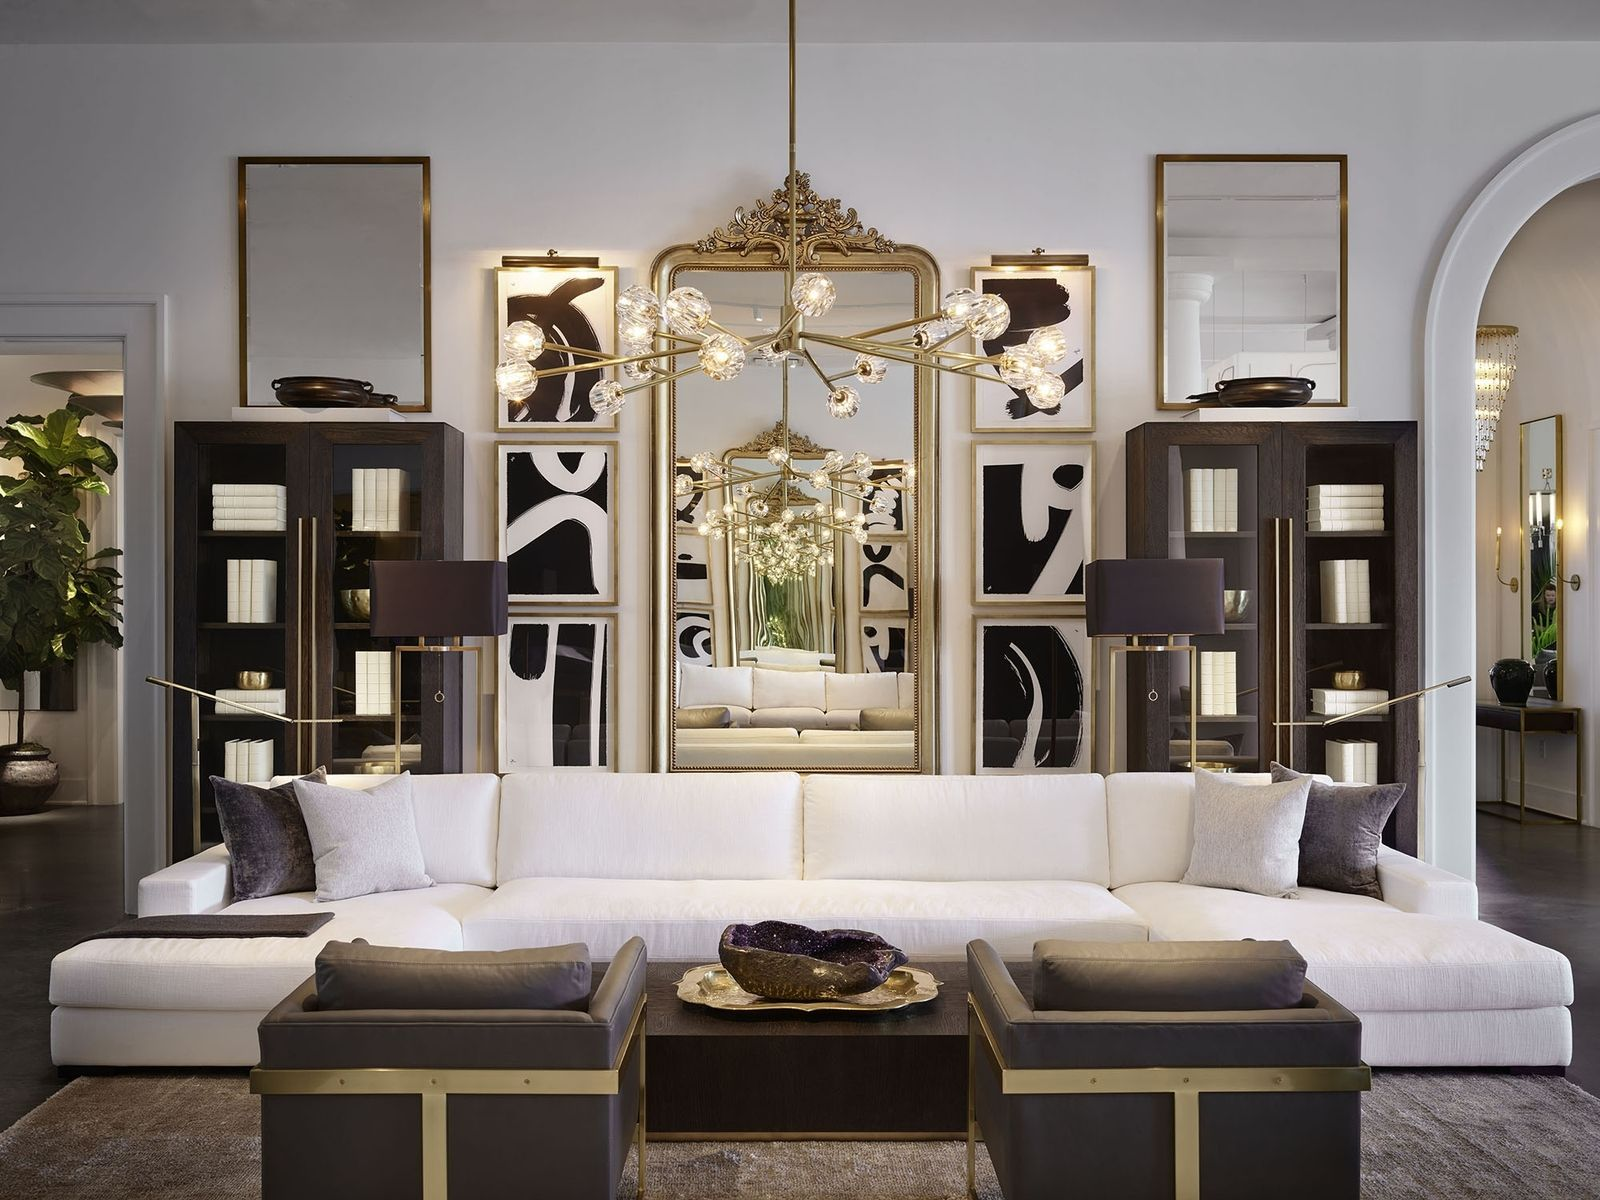 Restoration Hardware Just Opened A Mansion In Palm Beach And Youre Going To Want Move